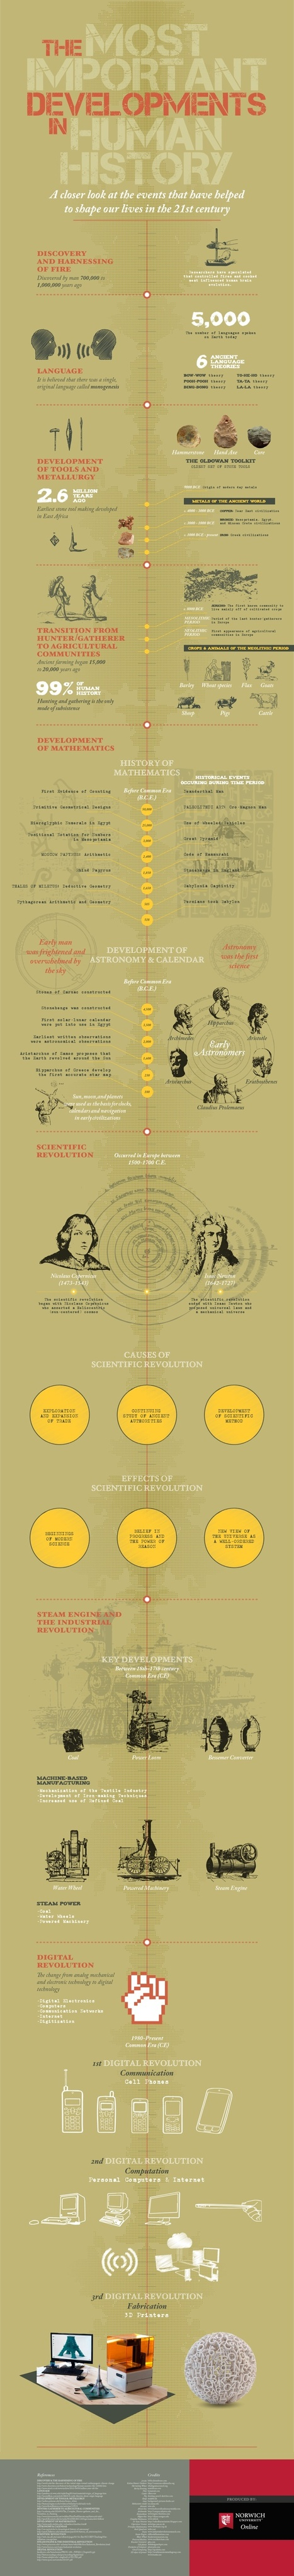 The Most Important Developments in Human History - Infographic | Educommunication | Scoop.it